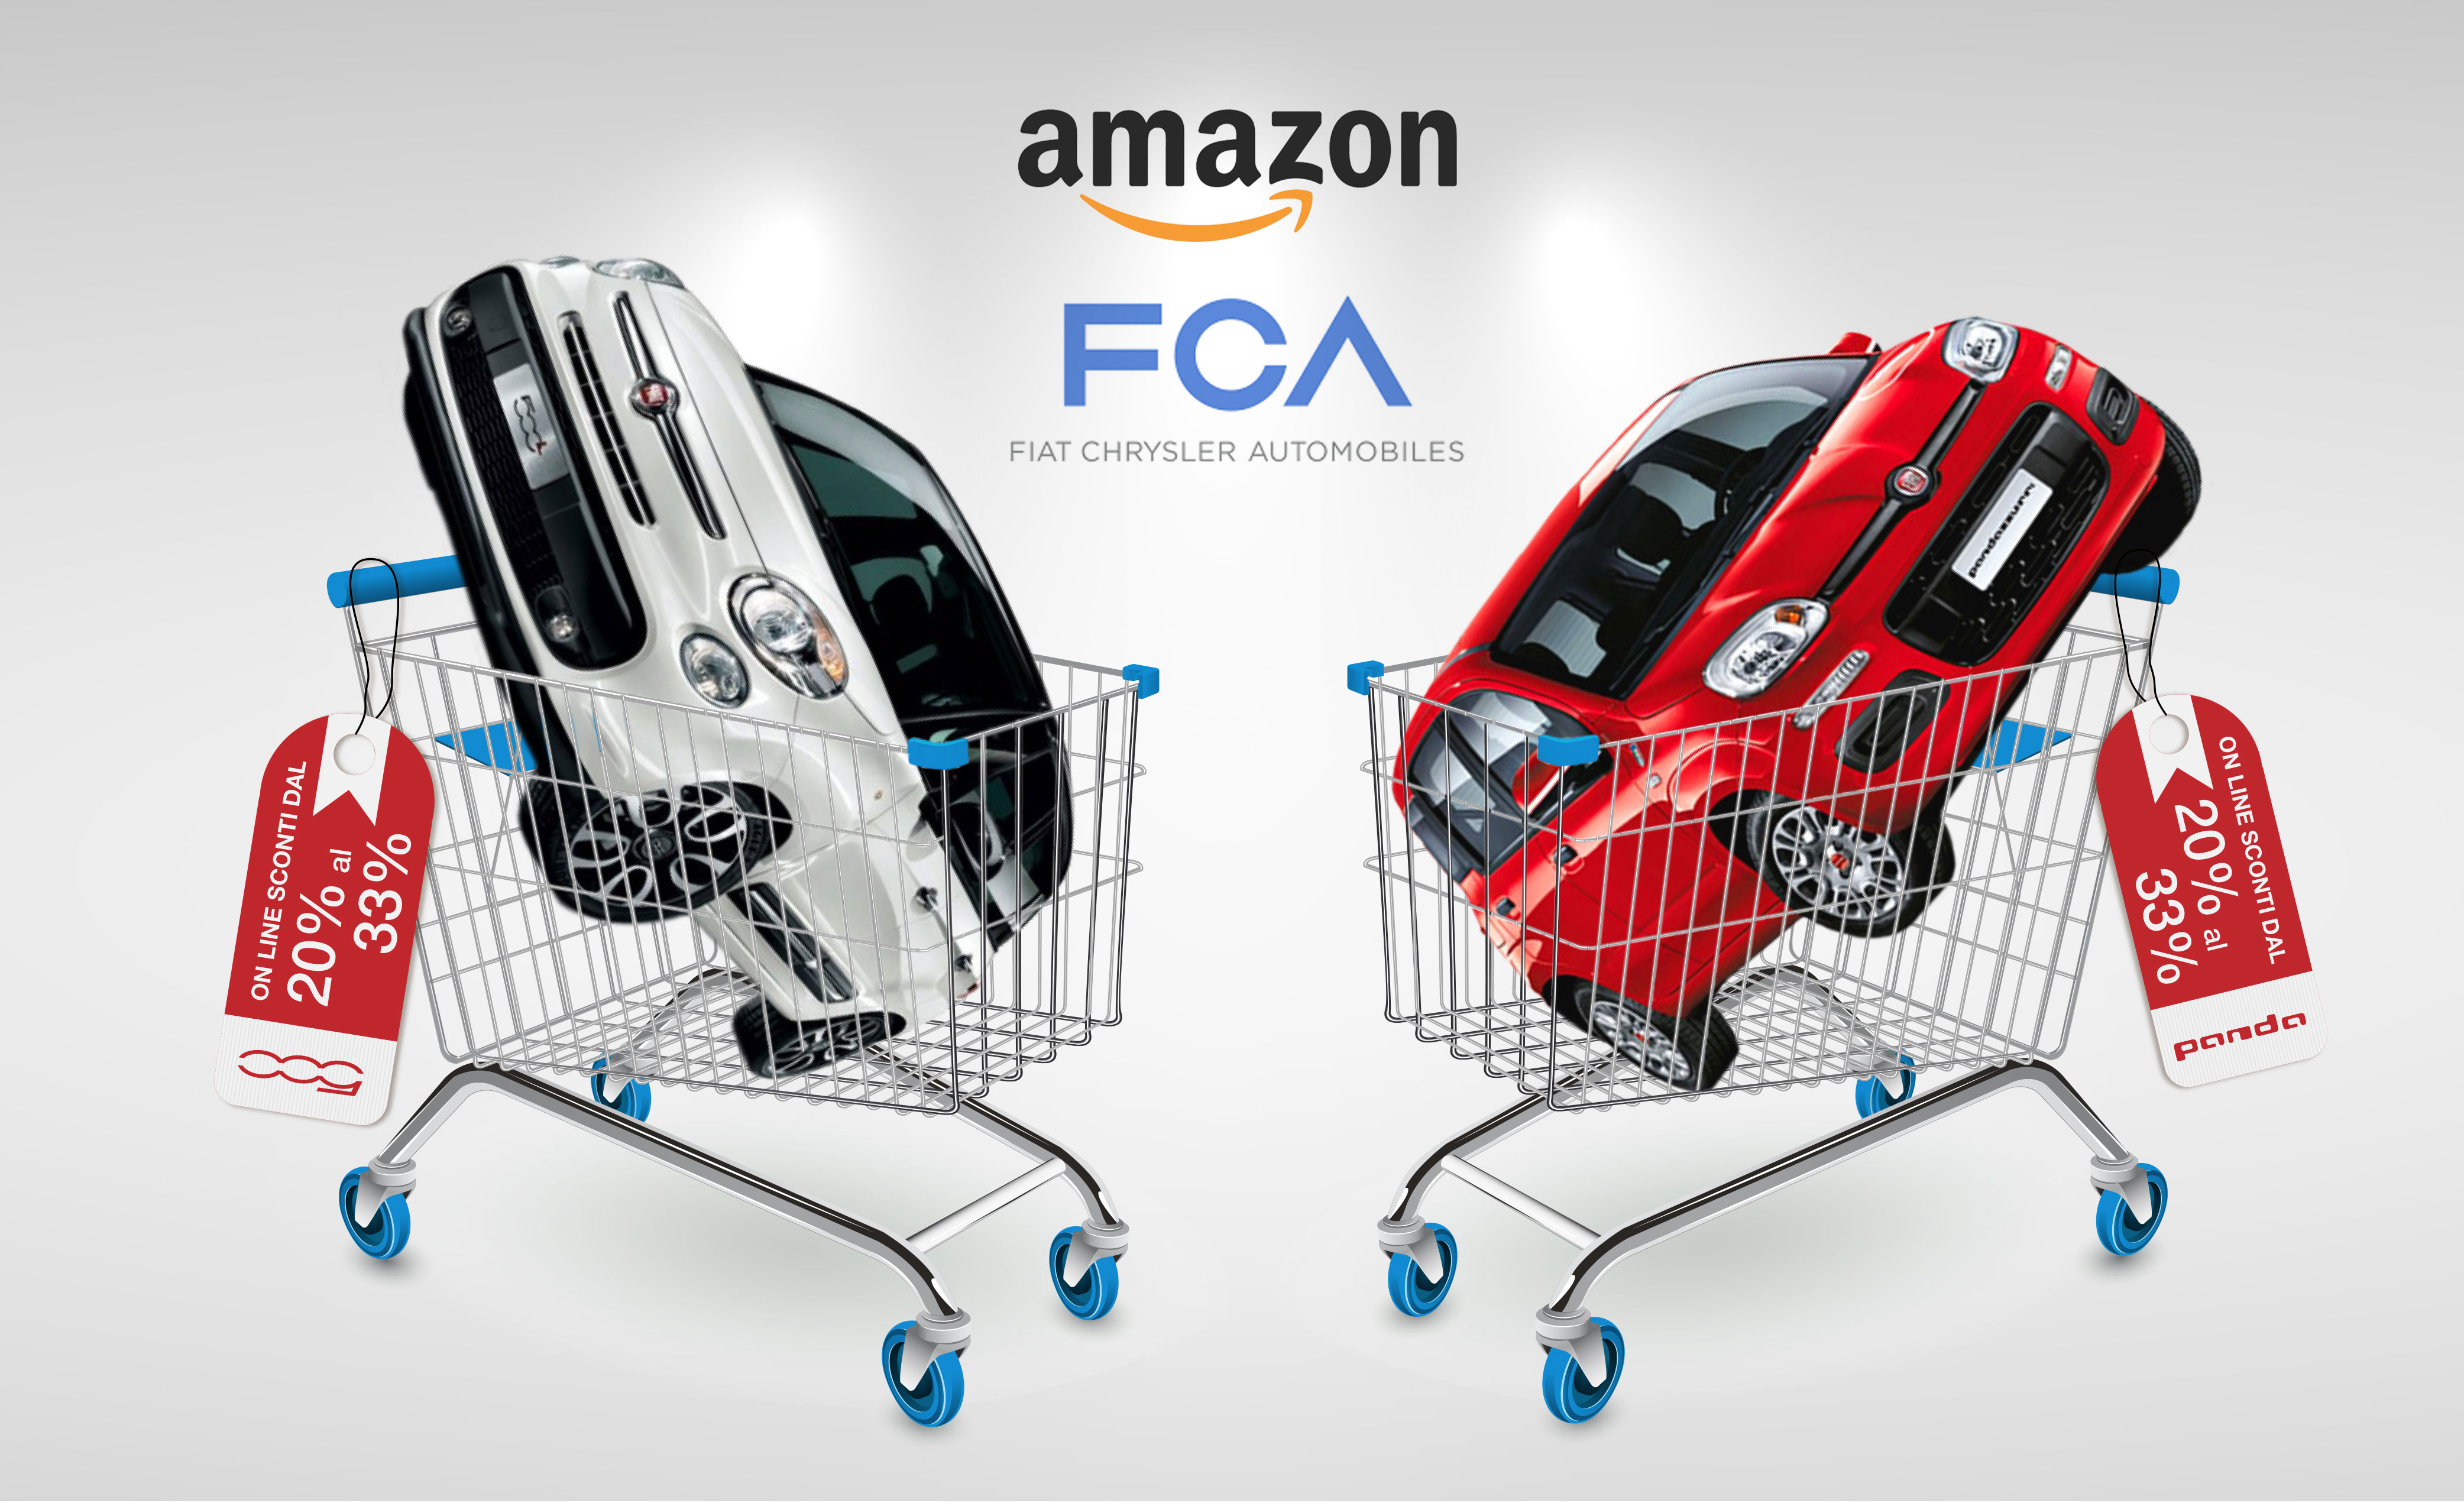 Amazon e FCA: un accordo che guarda al futuro